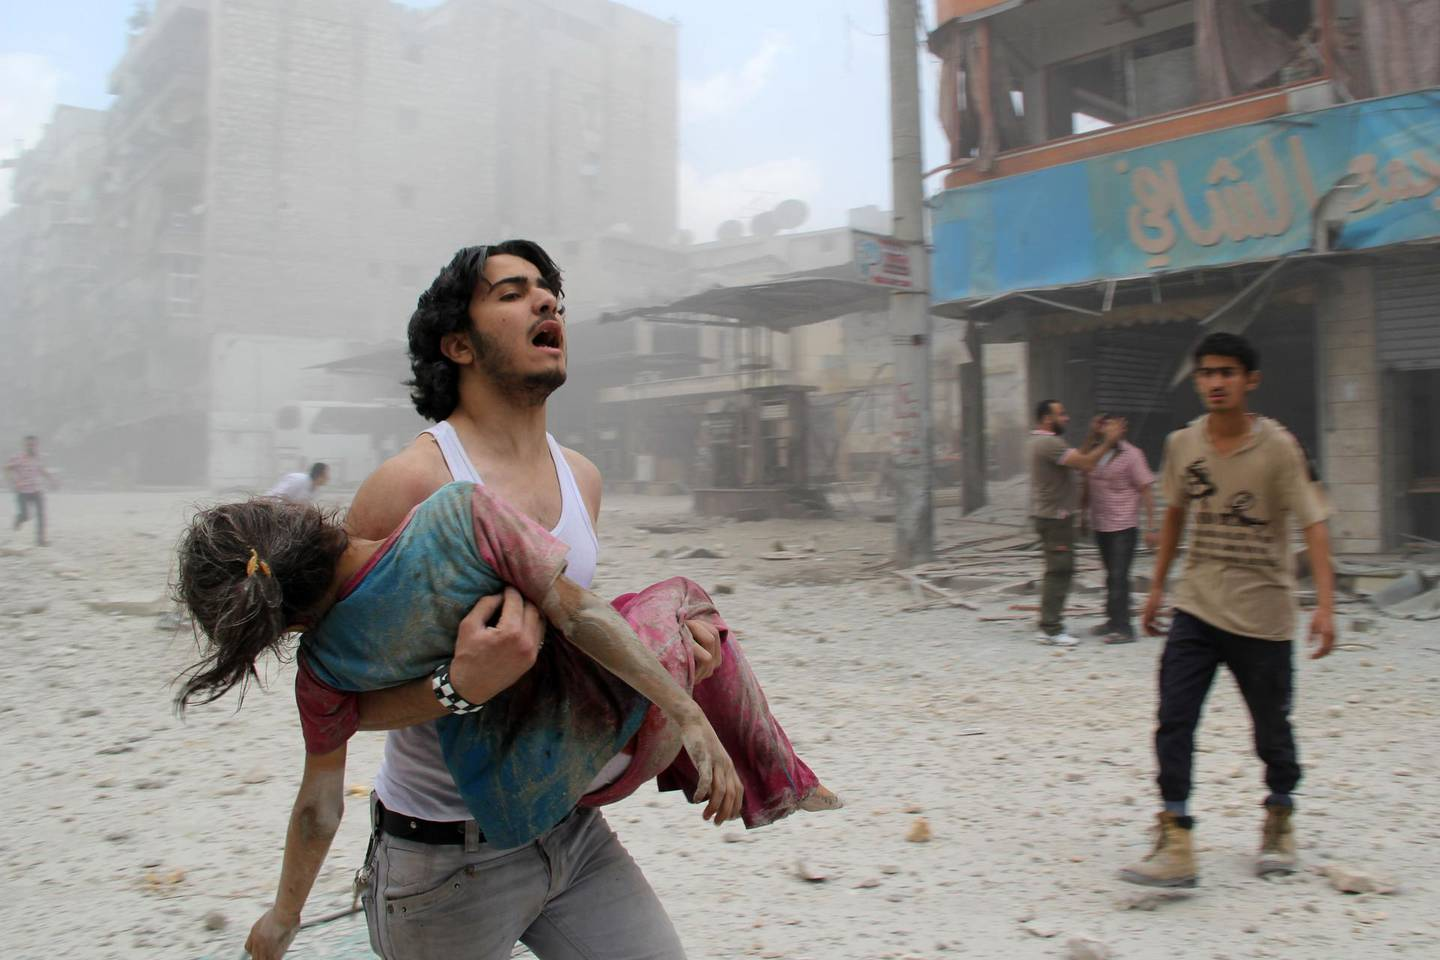 EDITORS NOTE: Graphic content / (FILES) In this file photo taken on June 3, 2014, a man carries a young girl who was injured in a reported barrel-bomb attack by government forces, in Kallaseh district in the northern city of Aleppo. As it enters its tenth year, the war in Syria is anything but abating as foreign powers scrap over a ravaged country where human suffering keeps reaching new levels. / AFP / BARAA AL-HALABI